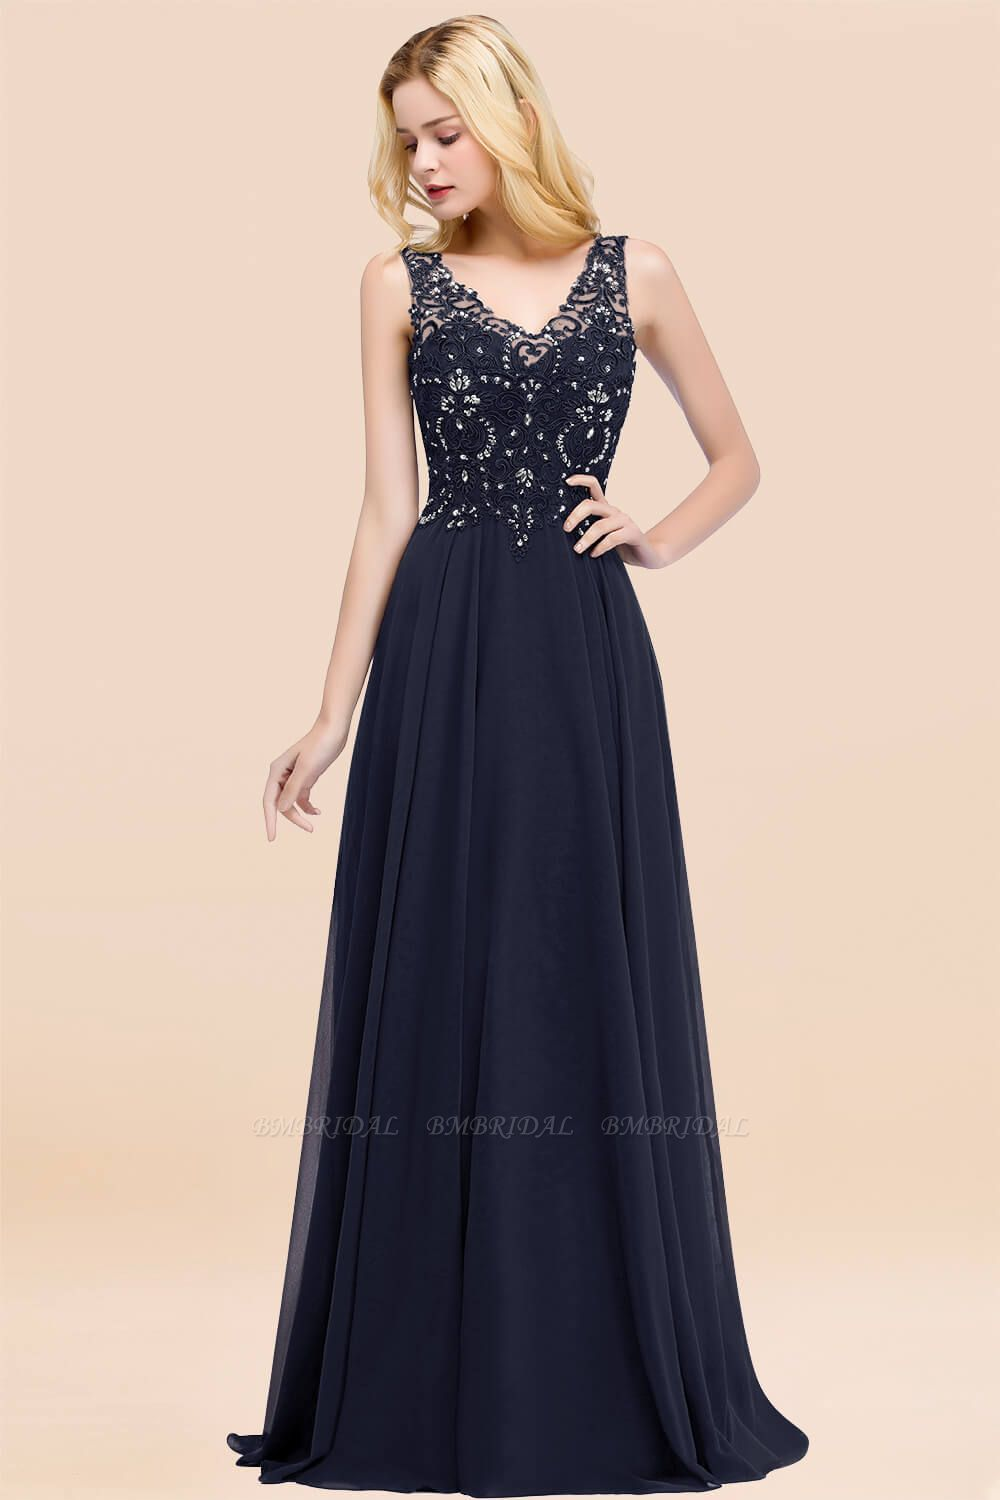 BMbridal Affordable Lace V-Neck Navy Bridesmaid Dresses With Appliques